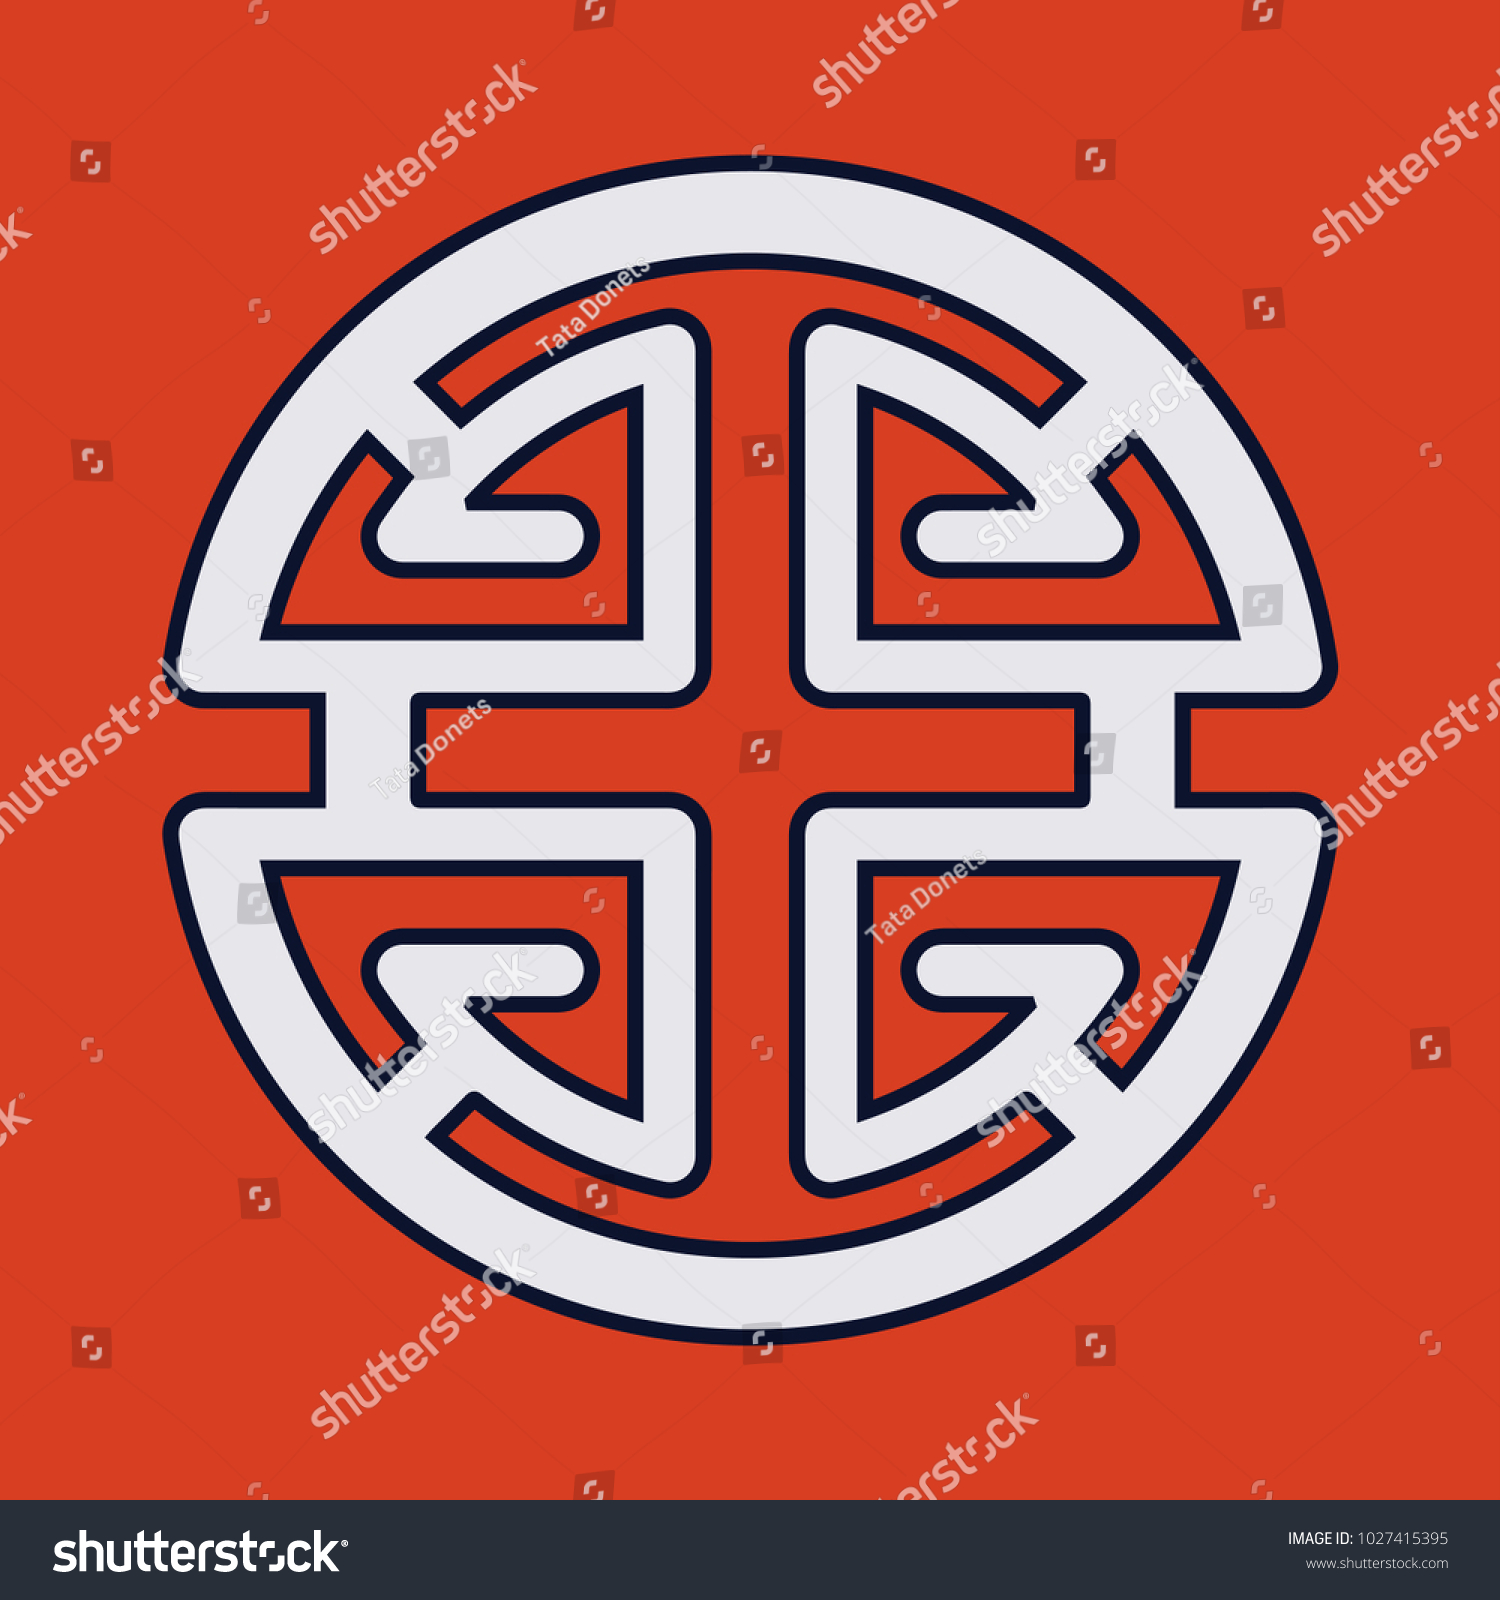 Theta join symbol choice image symbol and sign ideas symbol for prosperity gallery symbol and sign ideas chinese vector symbol lu star known stock vector buycottarizona